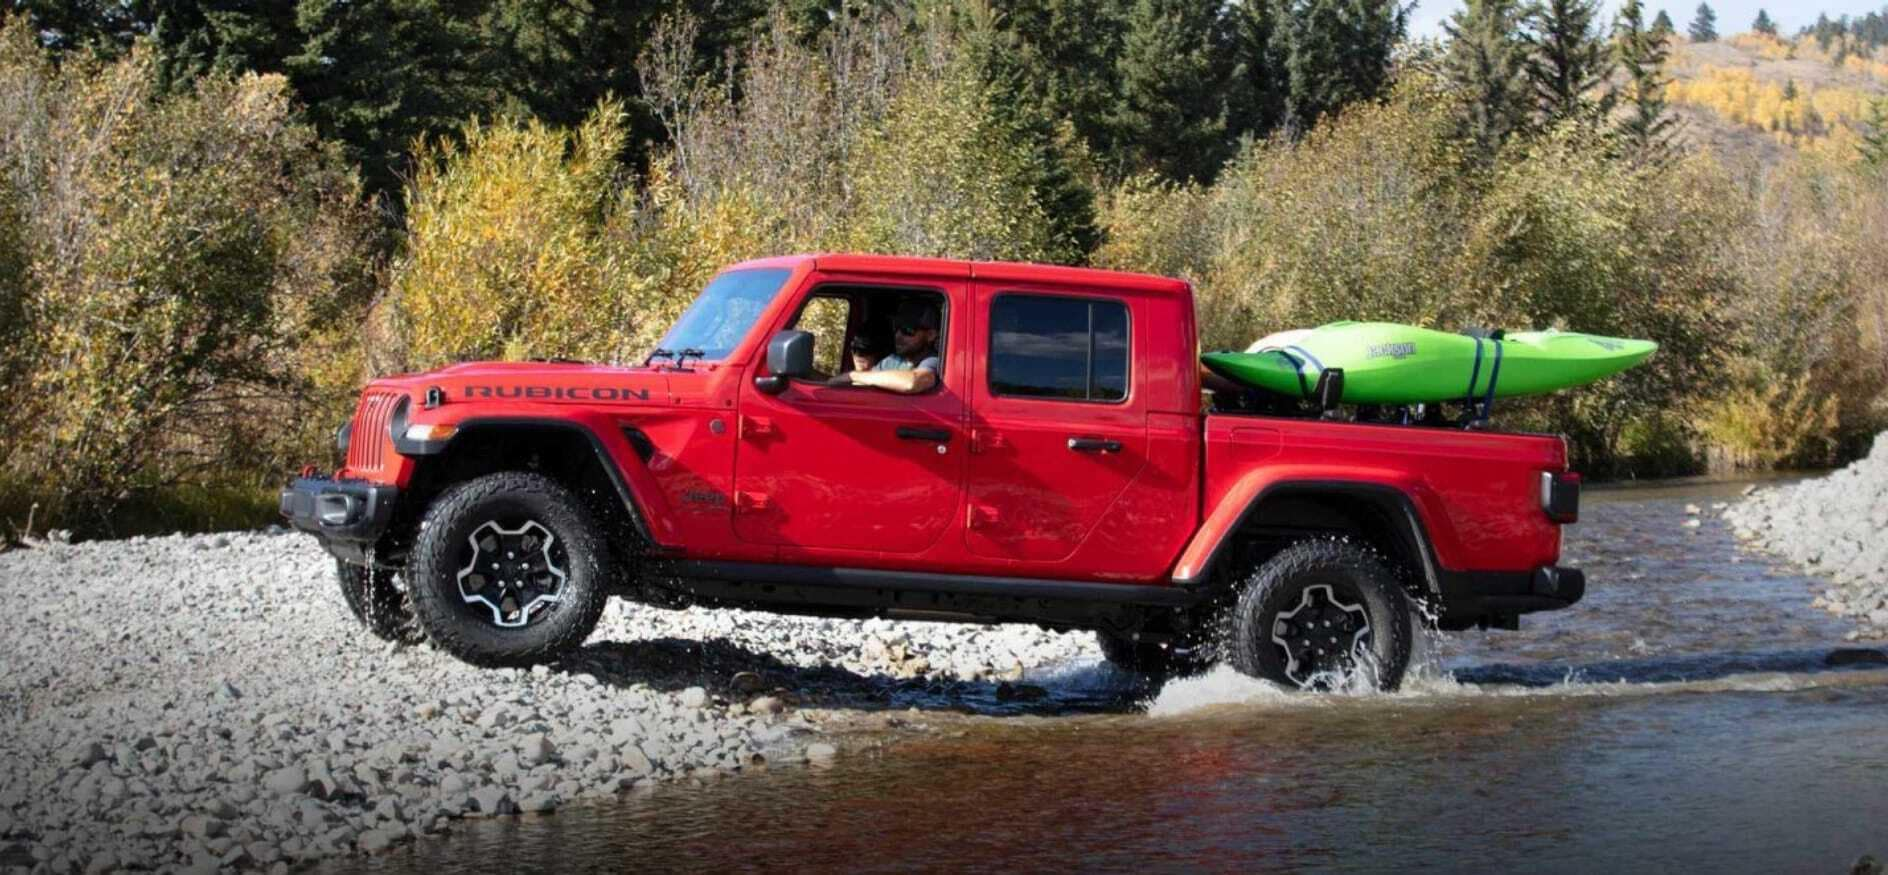 Most Off-Road Capable Trucks